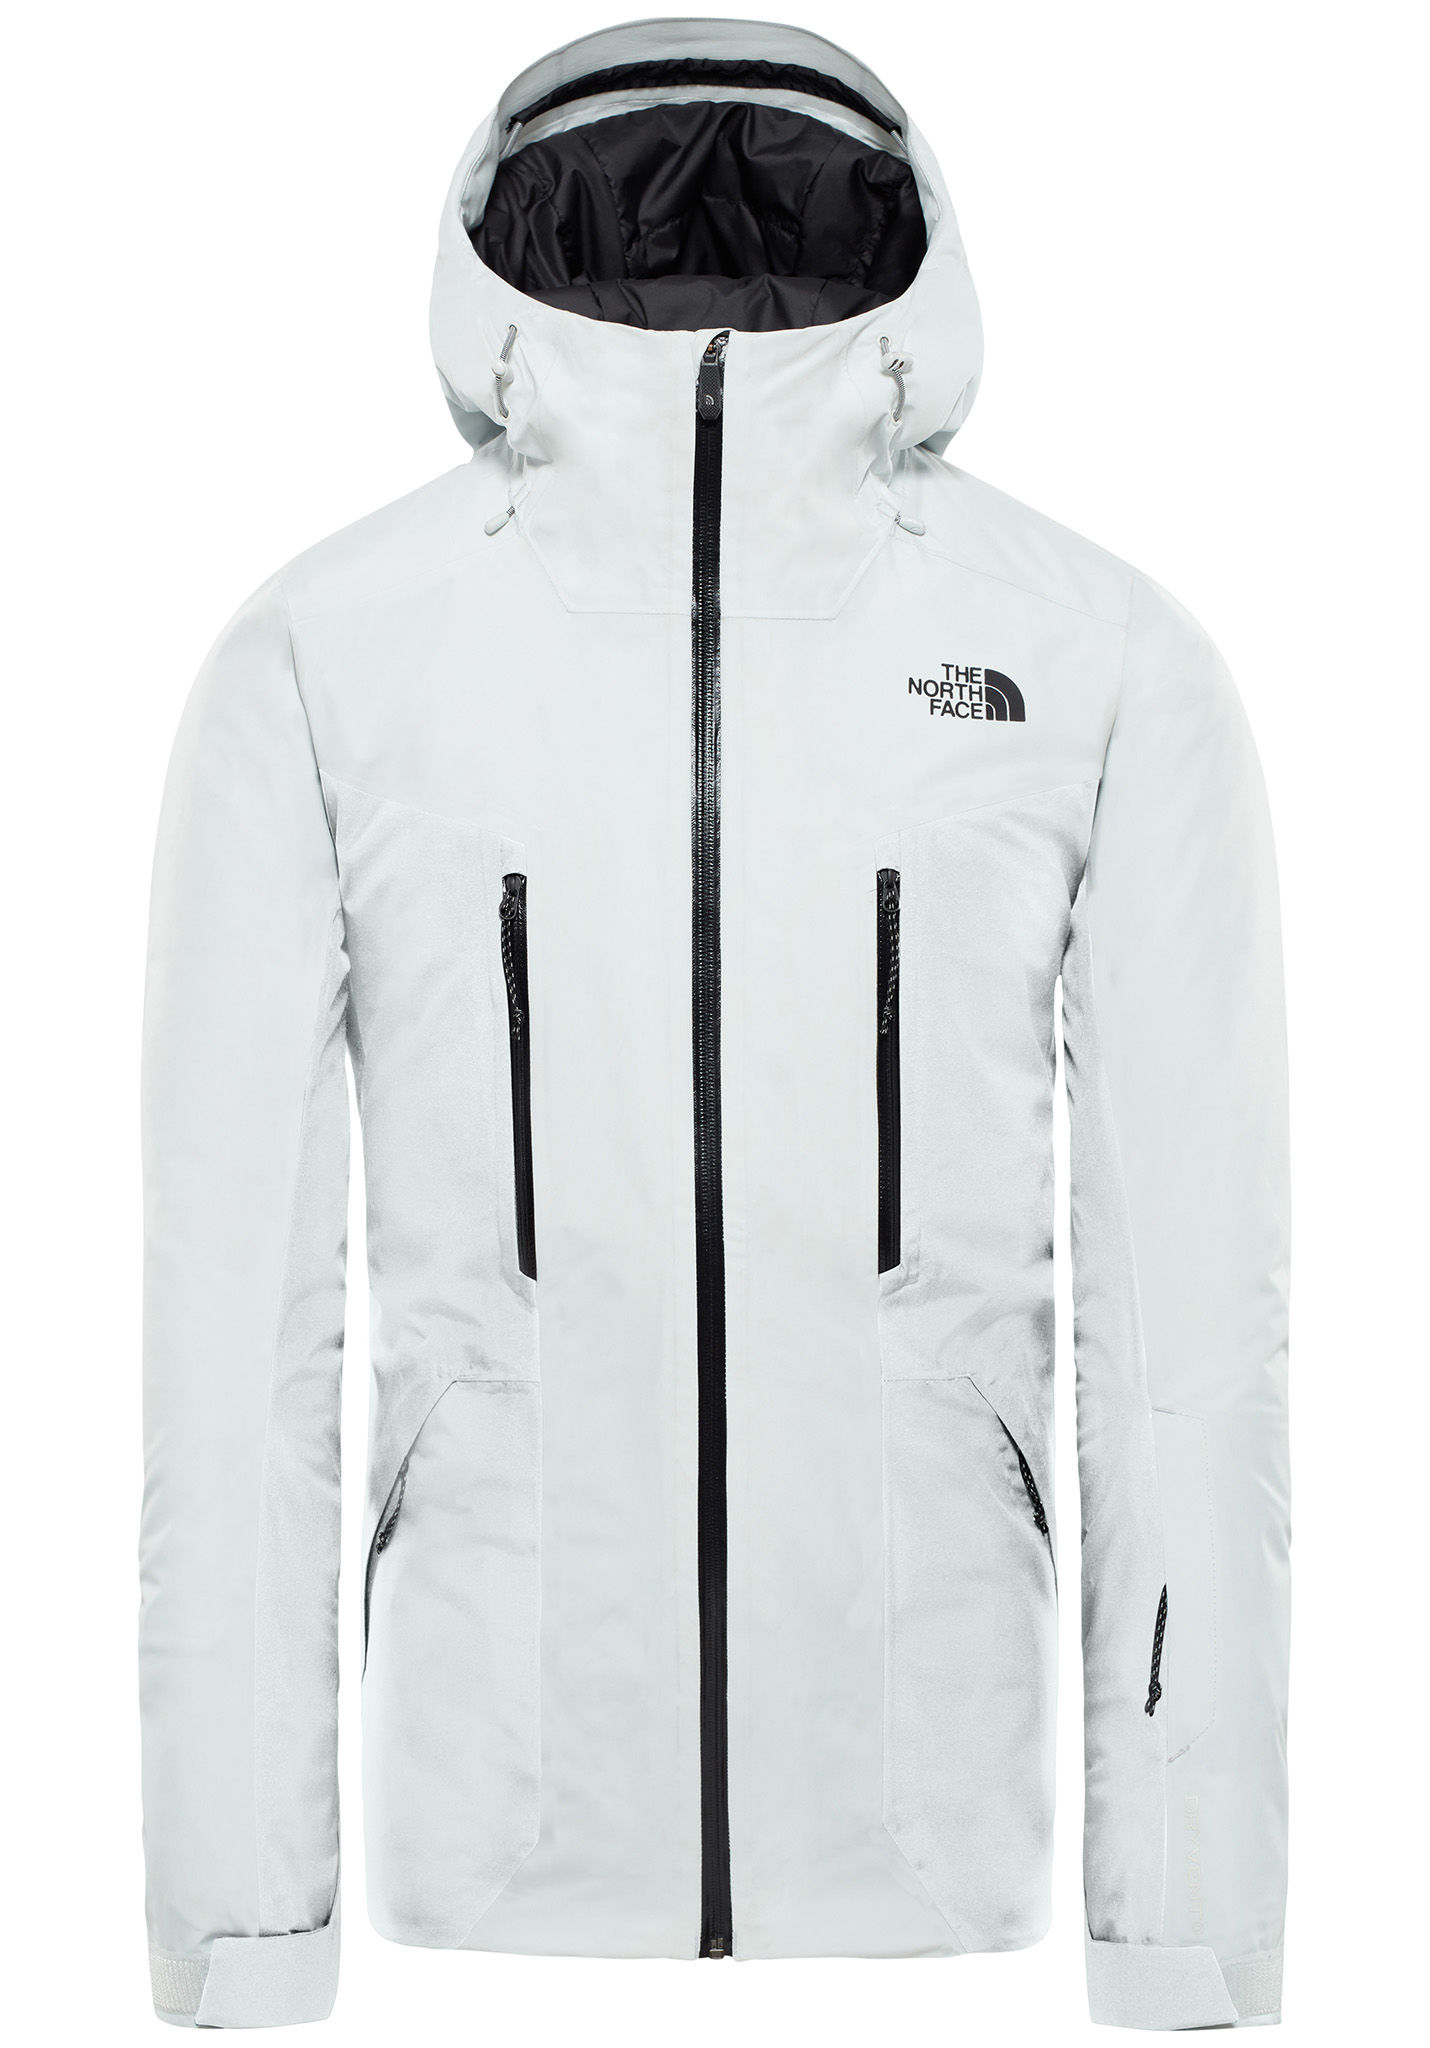 f4e6b825b1 THE NORTH FACE Mount Bre - Ski Jacket for Men - Grey - Planet Sports